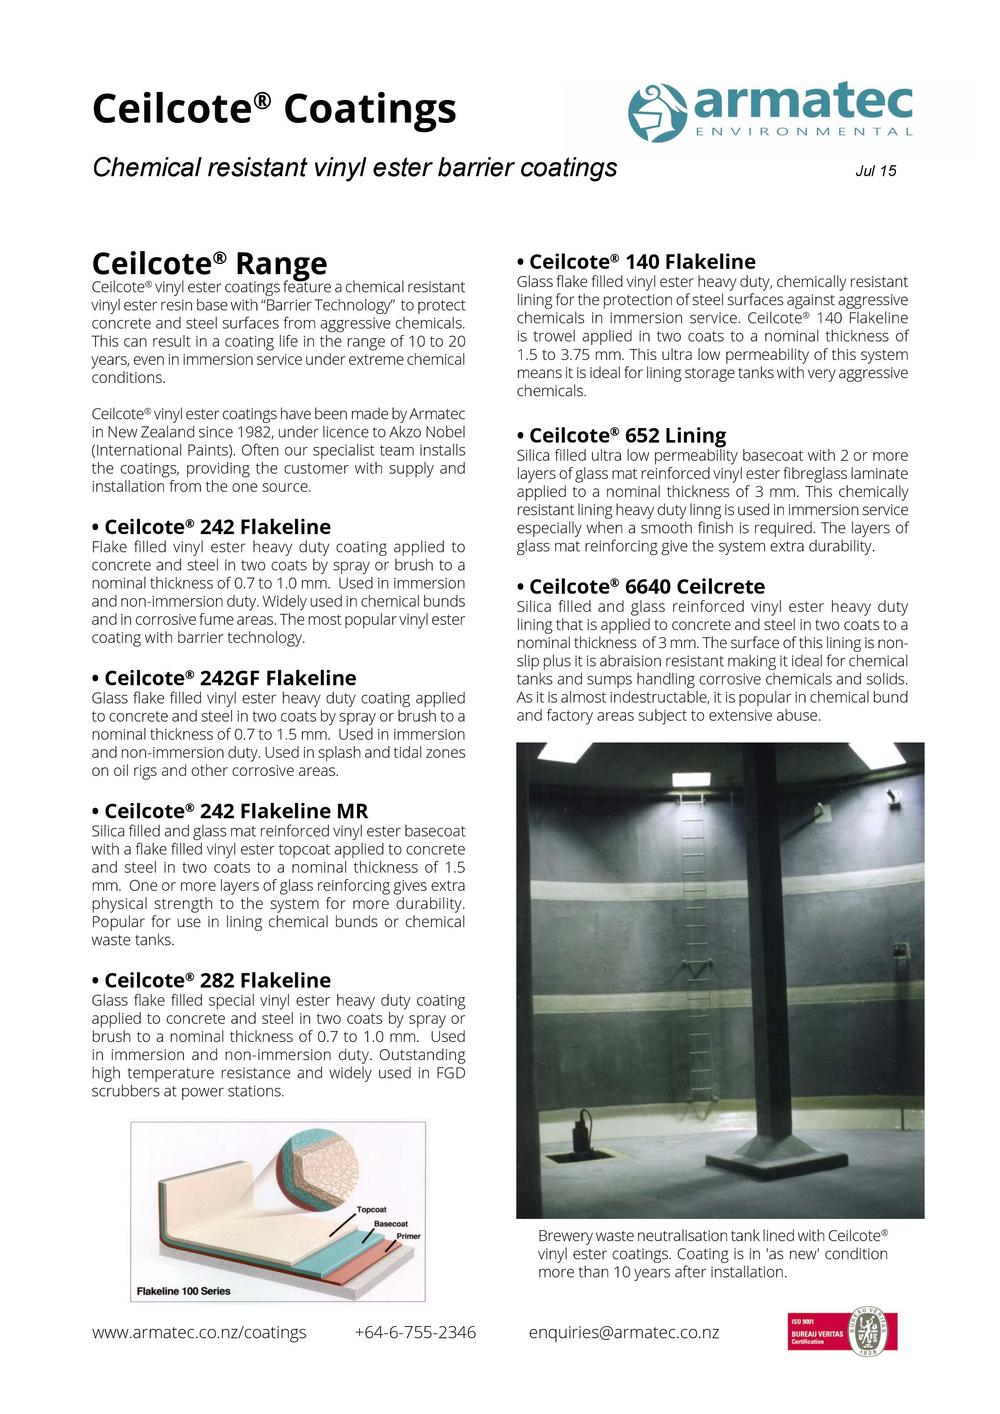 Download the Ceilcote Vinyl Ester Coatings & Linings Handbook